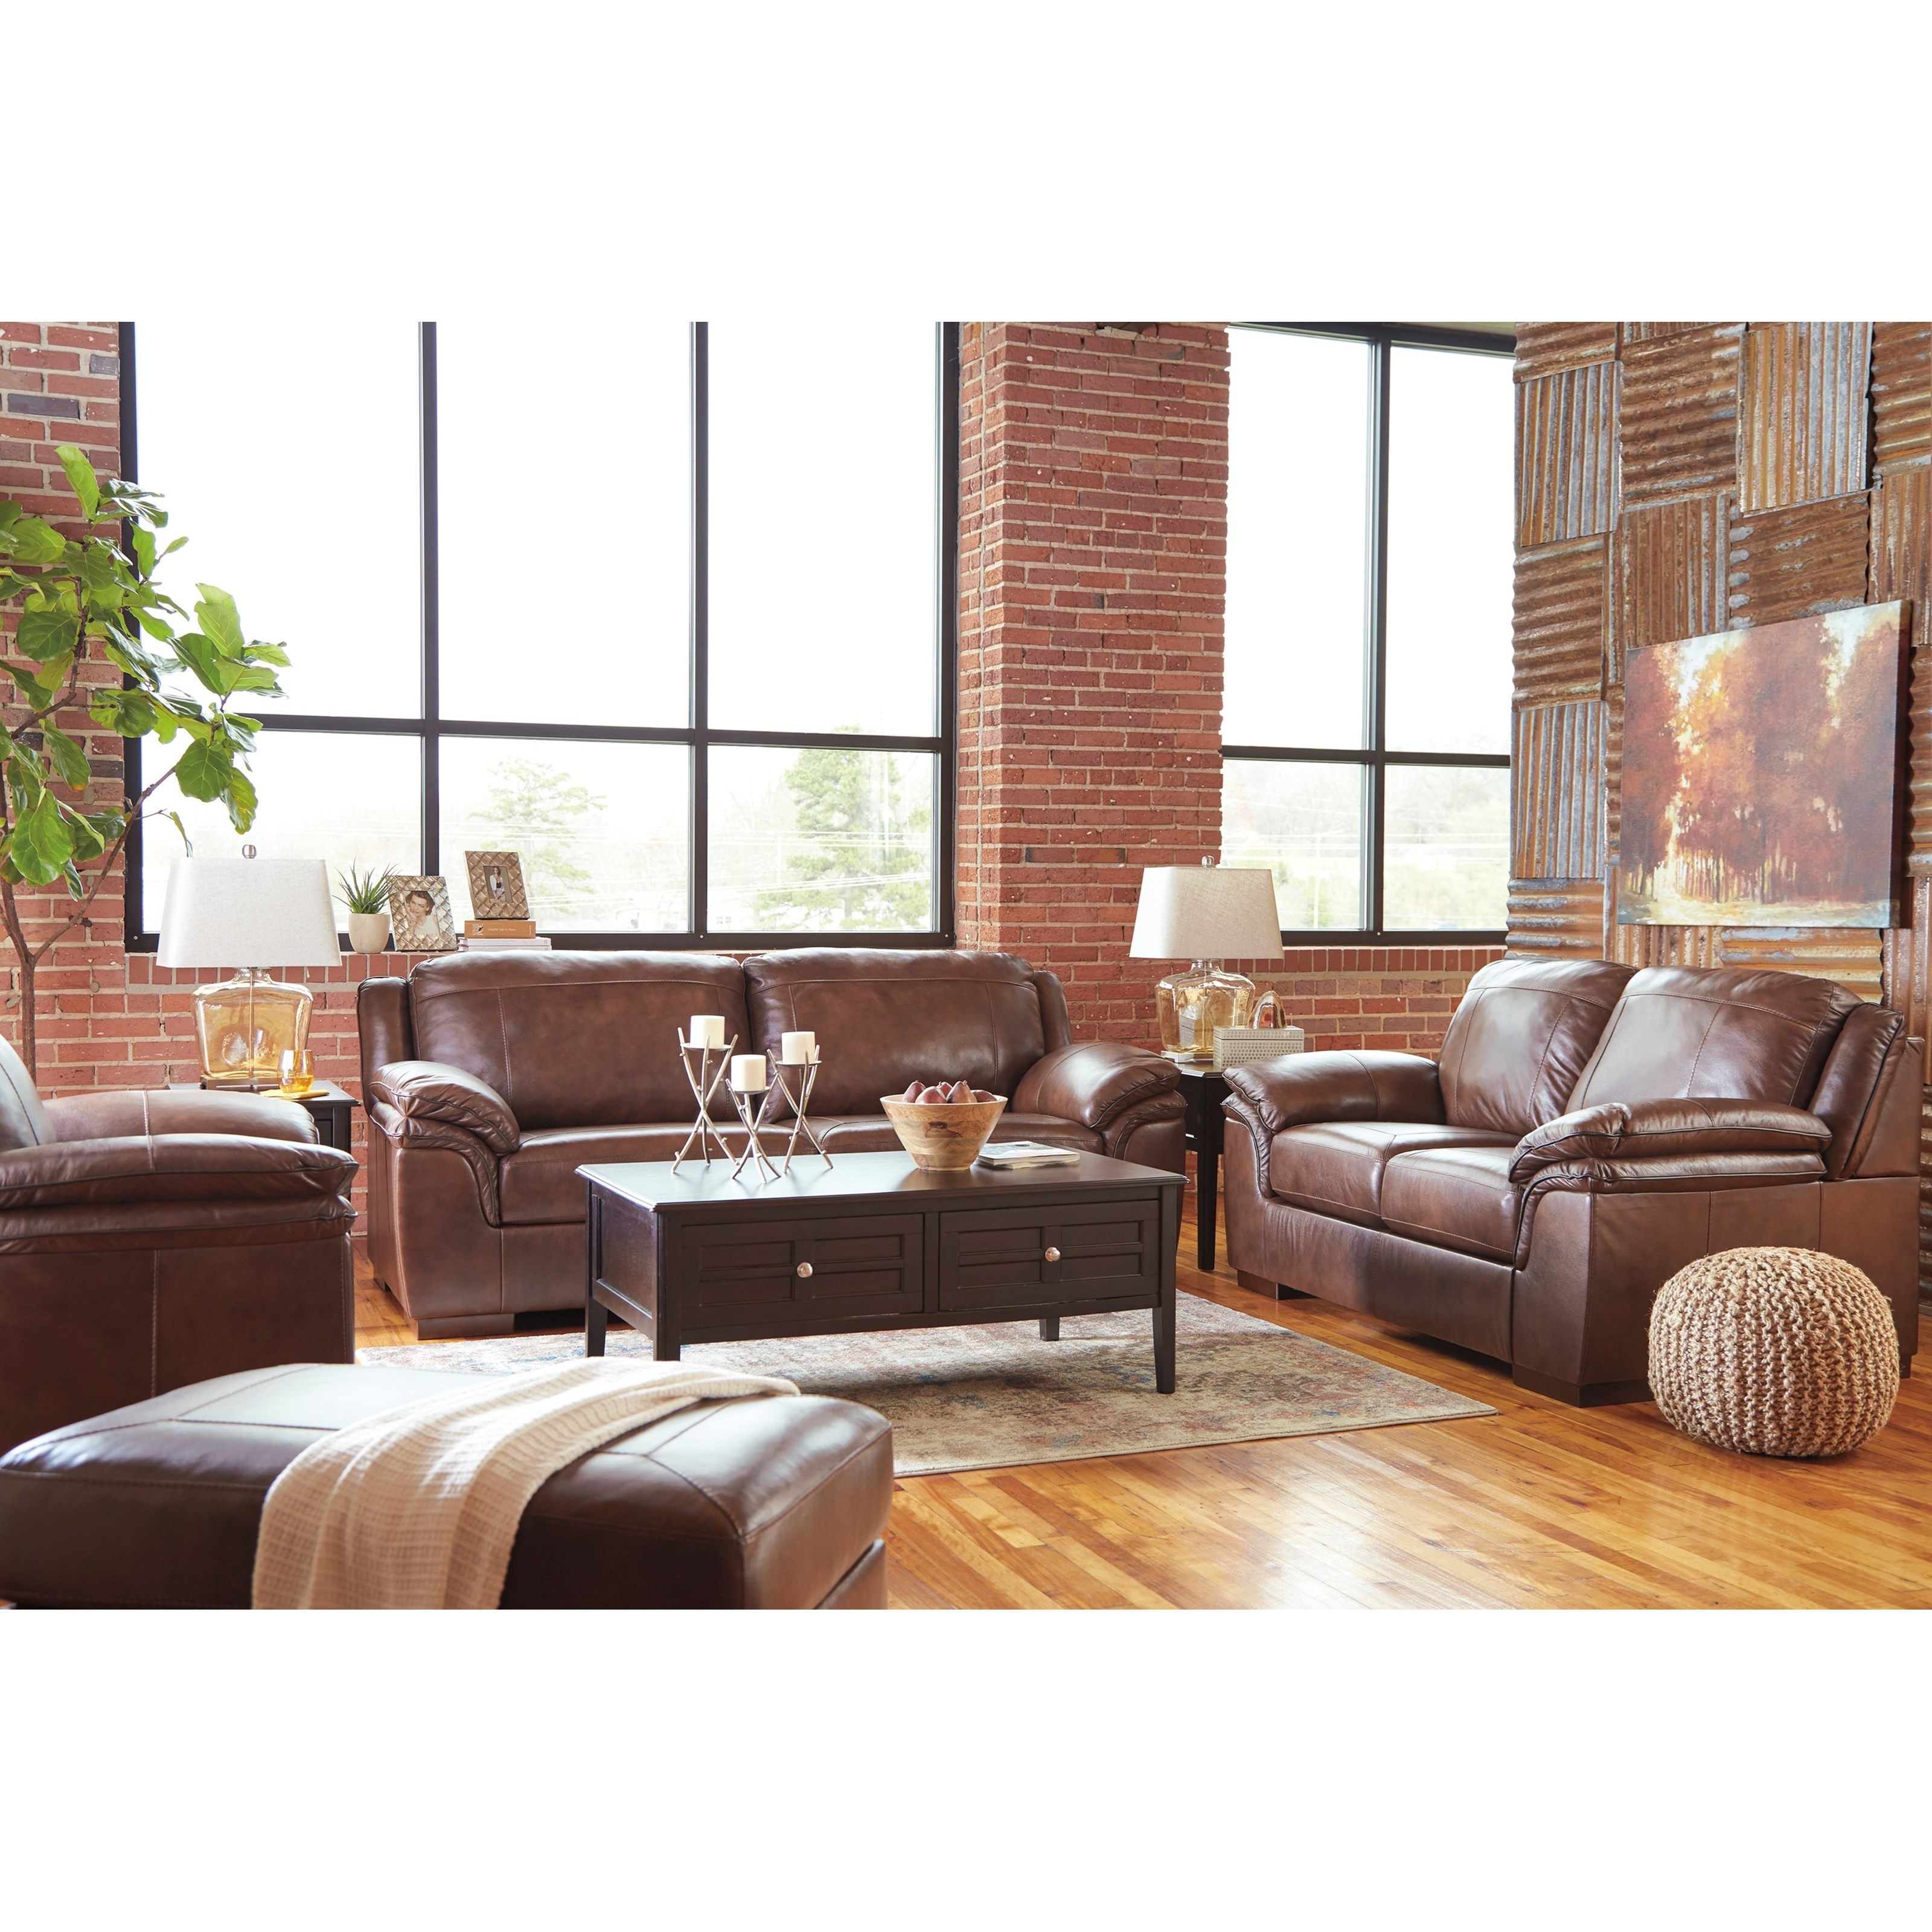 Signature Design By Ashley Islebrook Stationary Living Room Group Value City Furniture